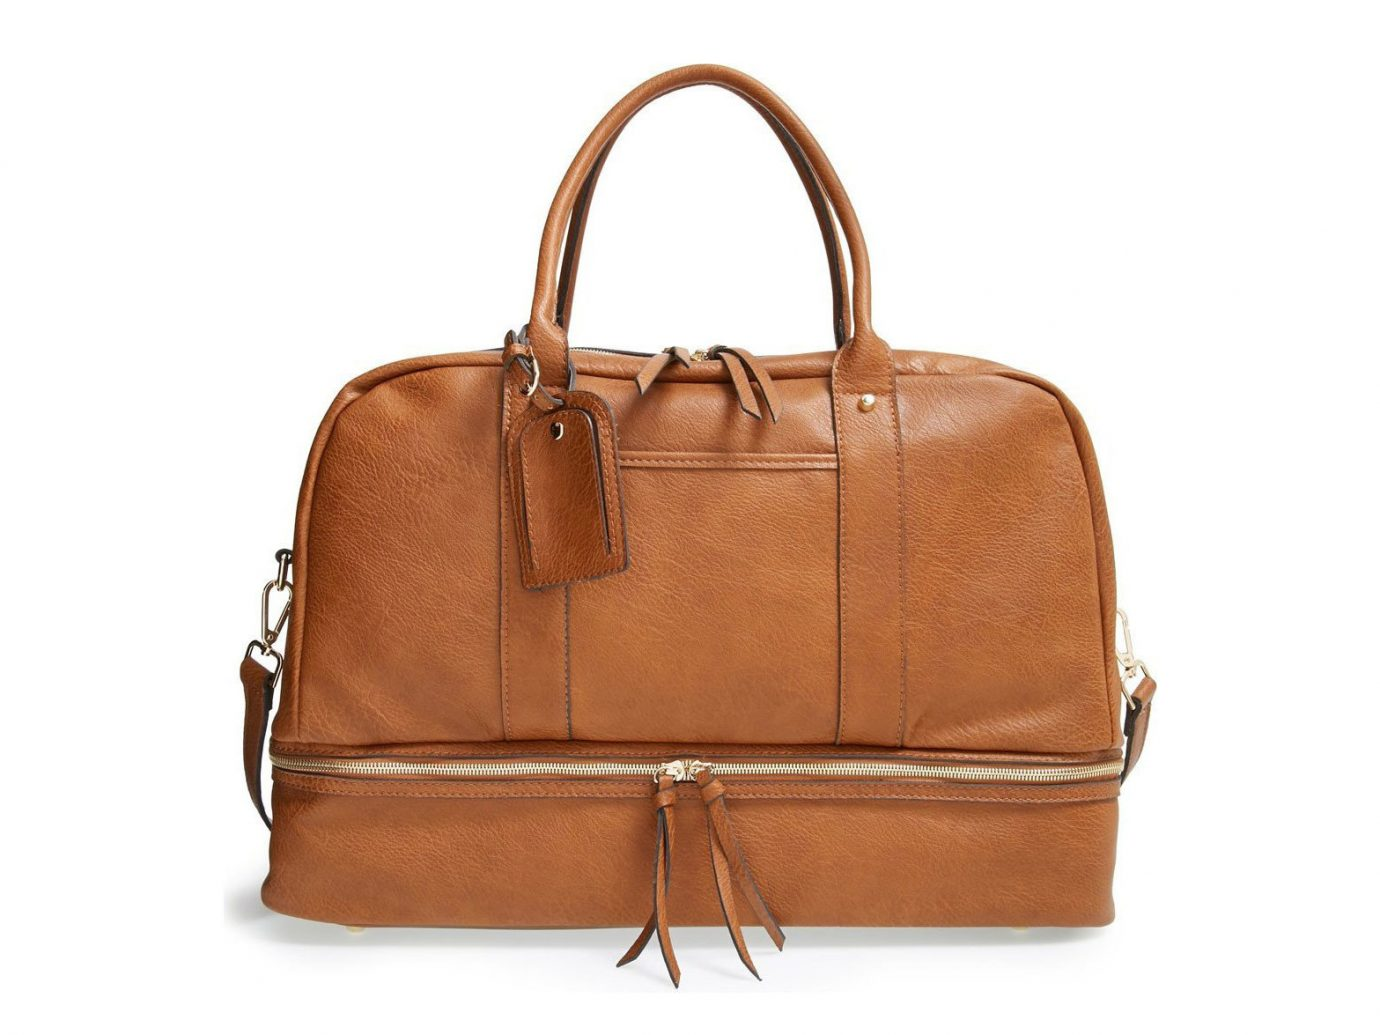 Packing Tips Style + Design Travel Shop bag brown leather handbag fashion accessory caramel color shoulder bag product baggage peach hand luggage